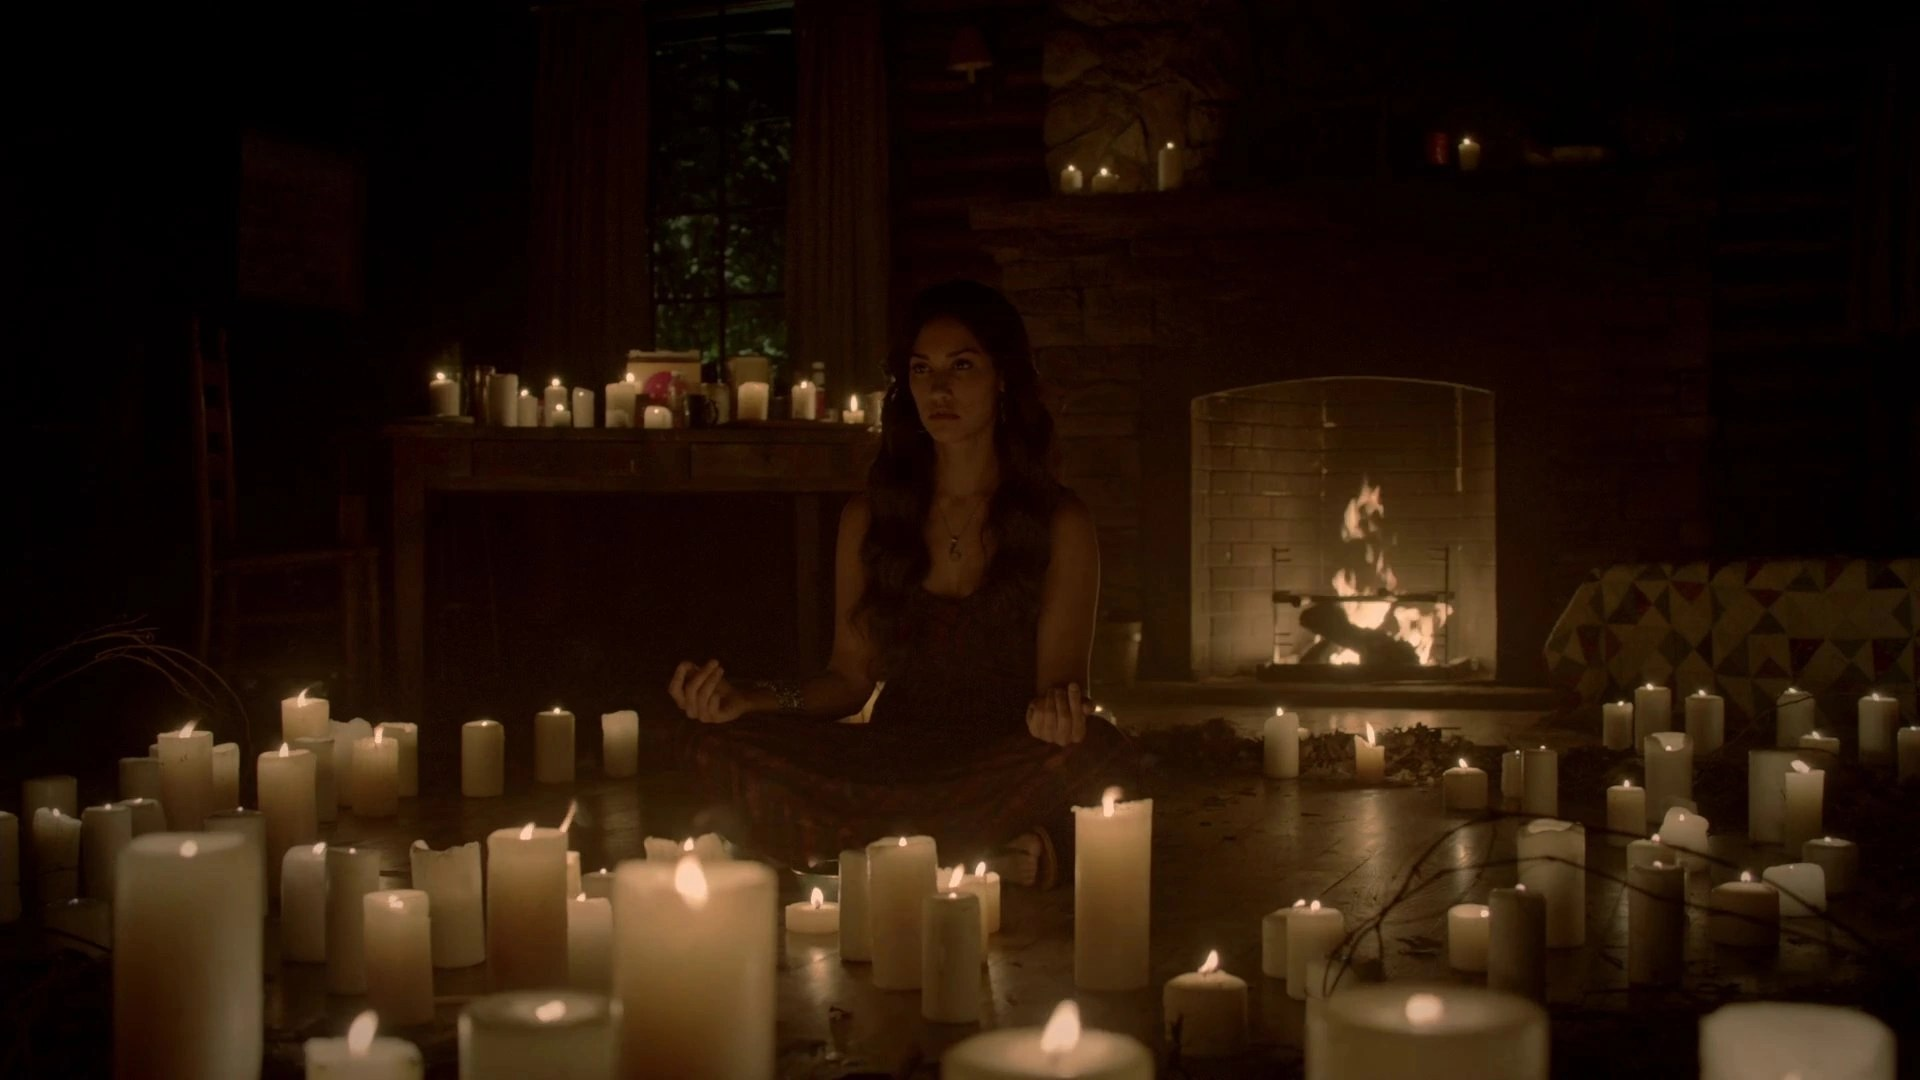 Robe De Chambre Ne Demek Spells And Rituals The Vampire Diaries Wiki Fandom Powered By